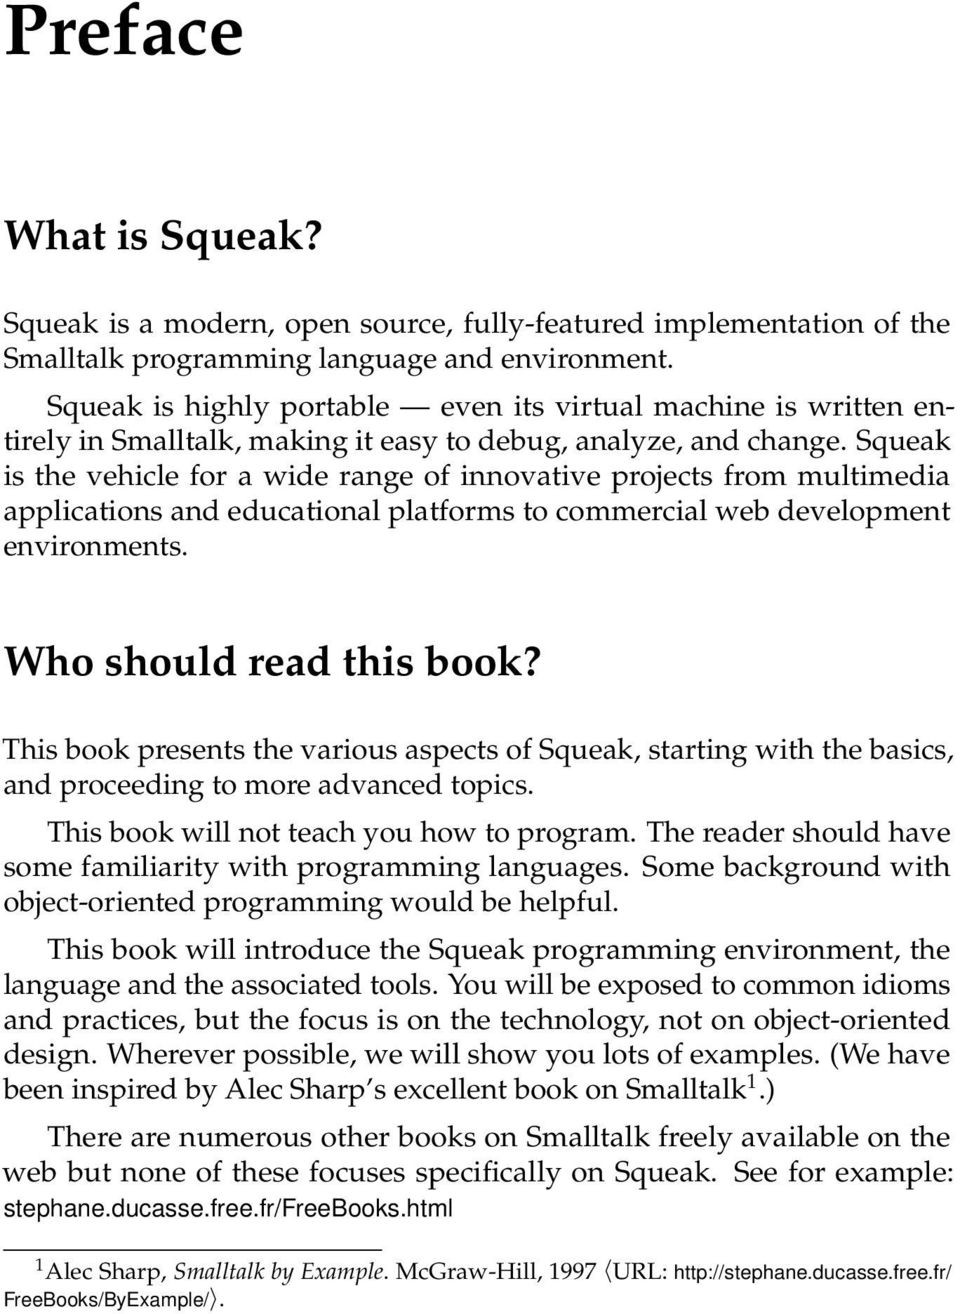 Squeak is the vehicle for a wide range of innovative projects from multimedia applications and educational platforms to commercial web development environments. Who should read this book?